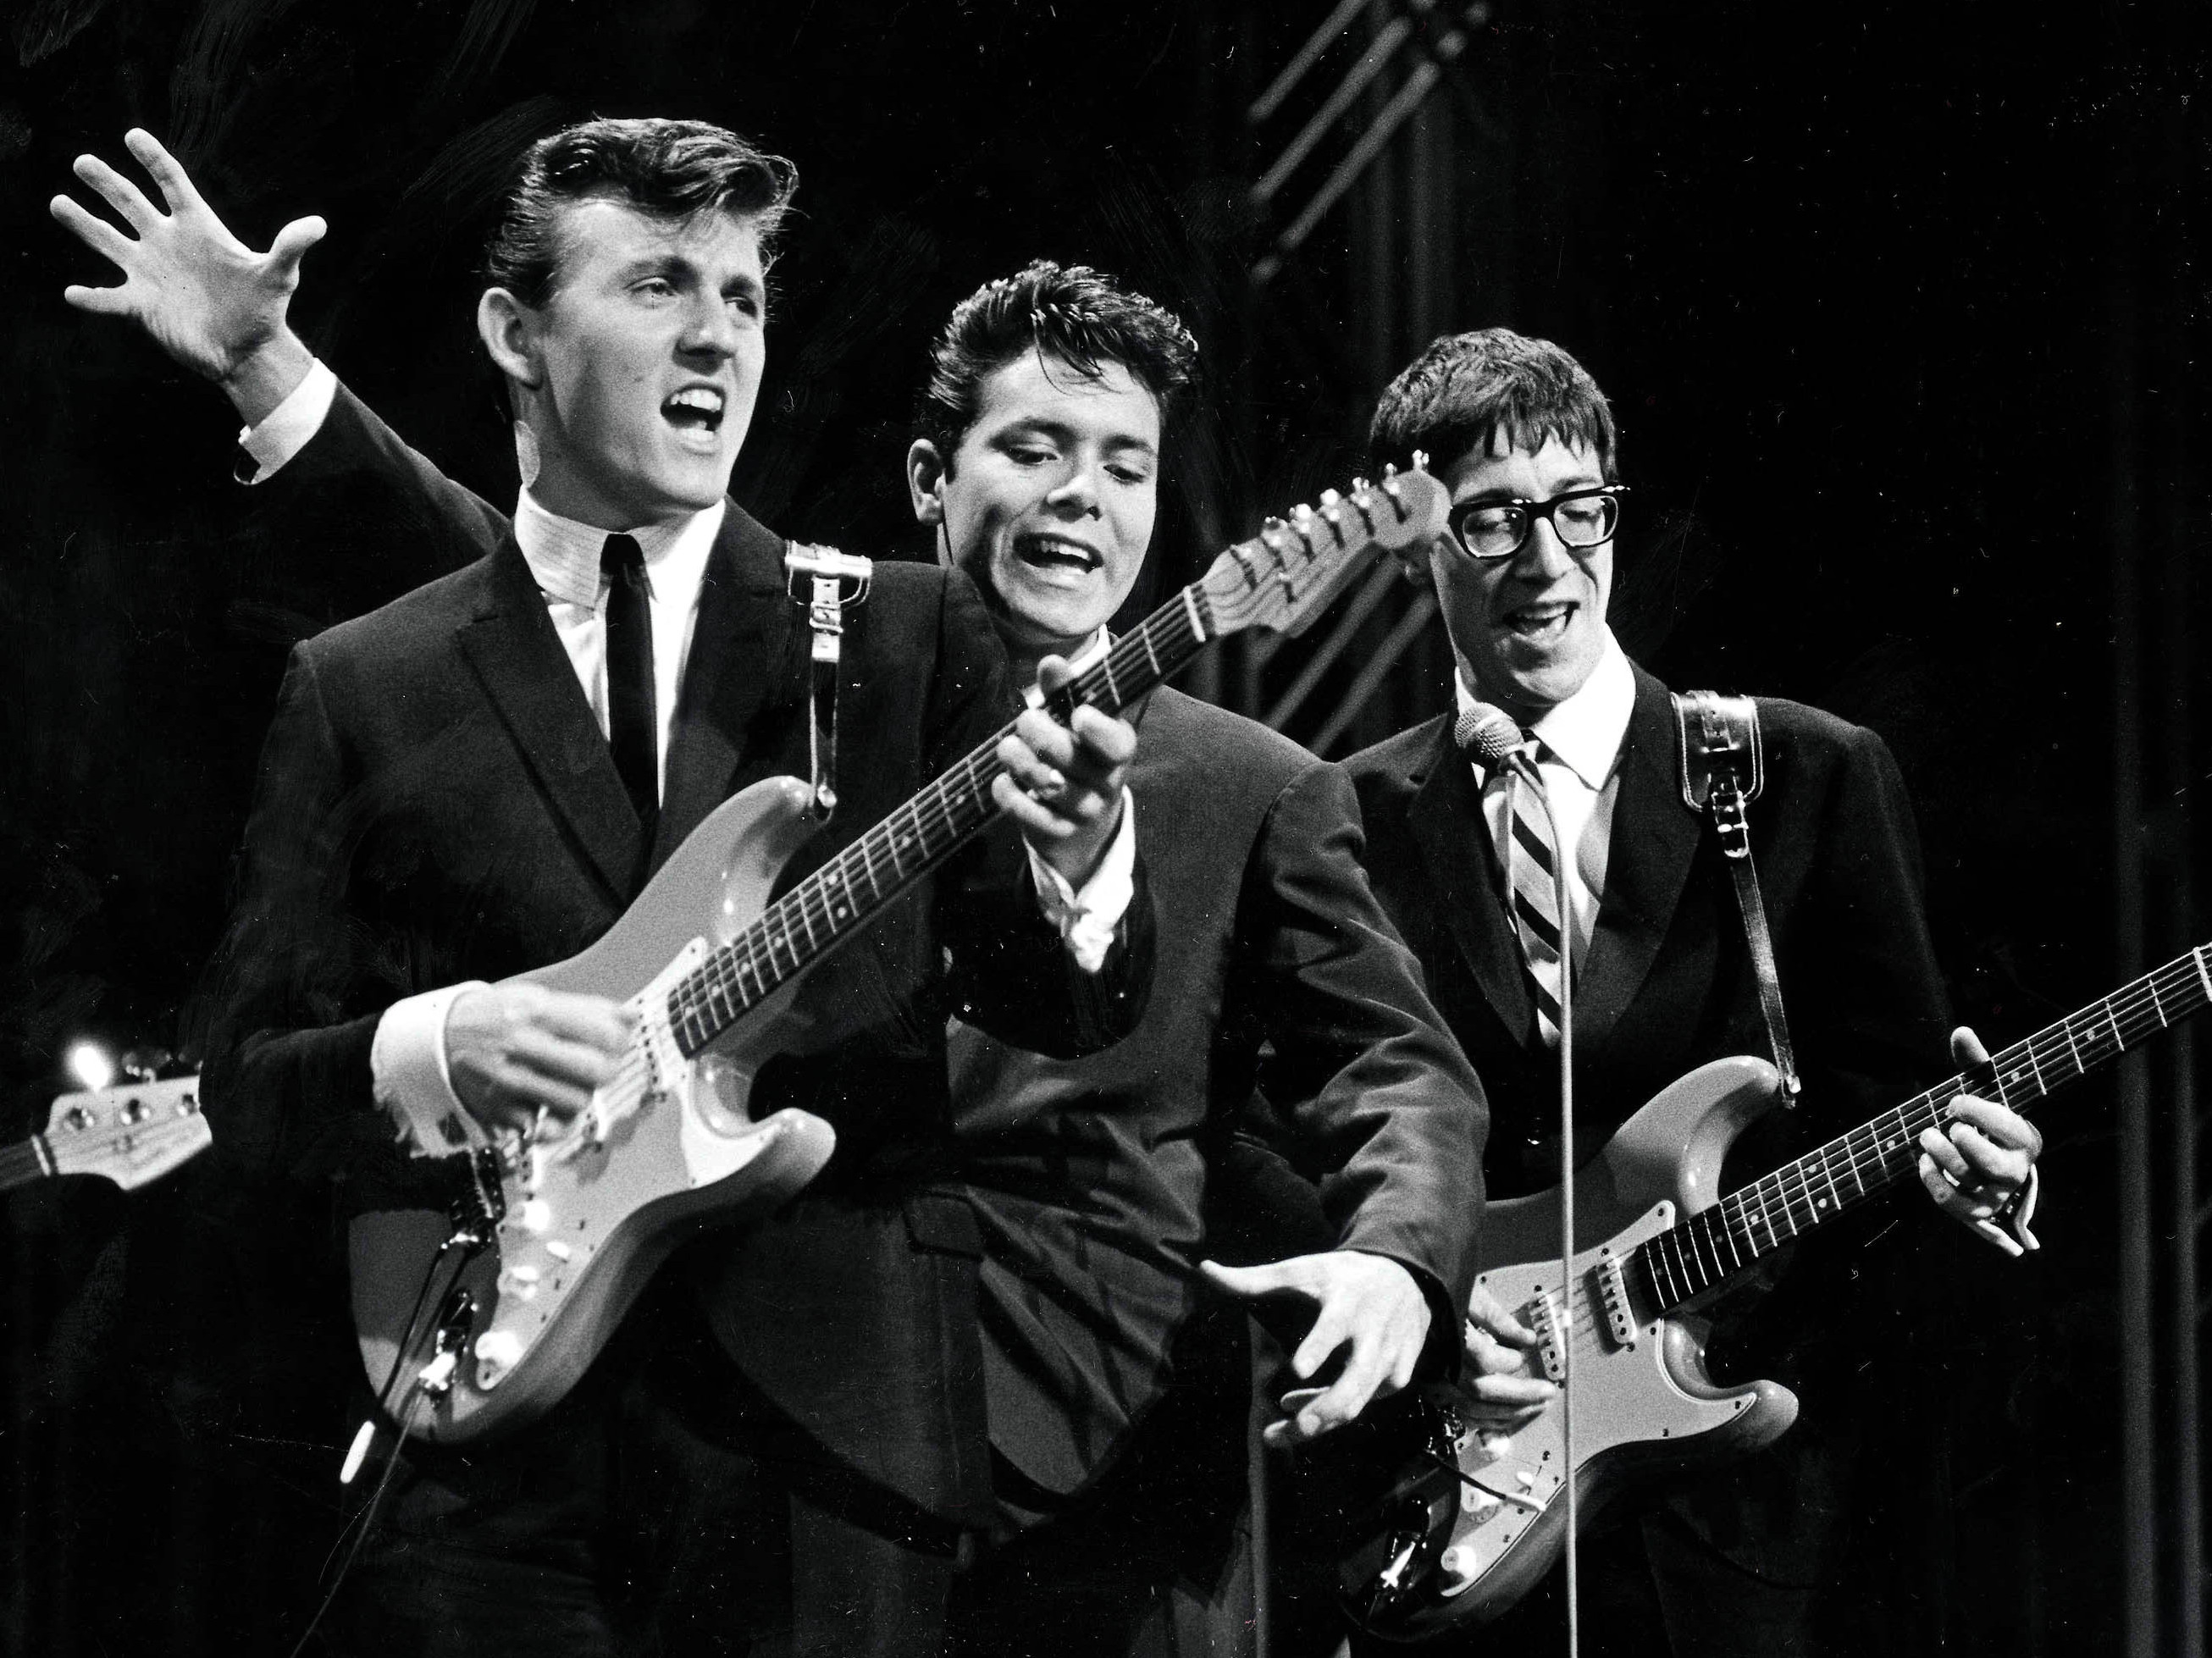 the different styles of british invasion bands Would the post-invasion us styles of garage bands and blues revival bands have become popular without the popularity of the british bands.